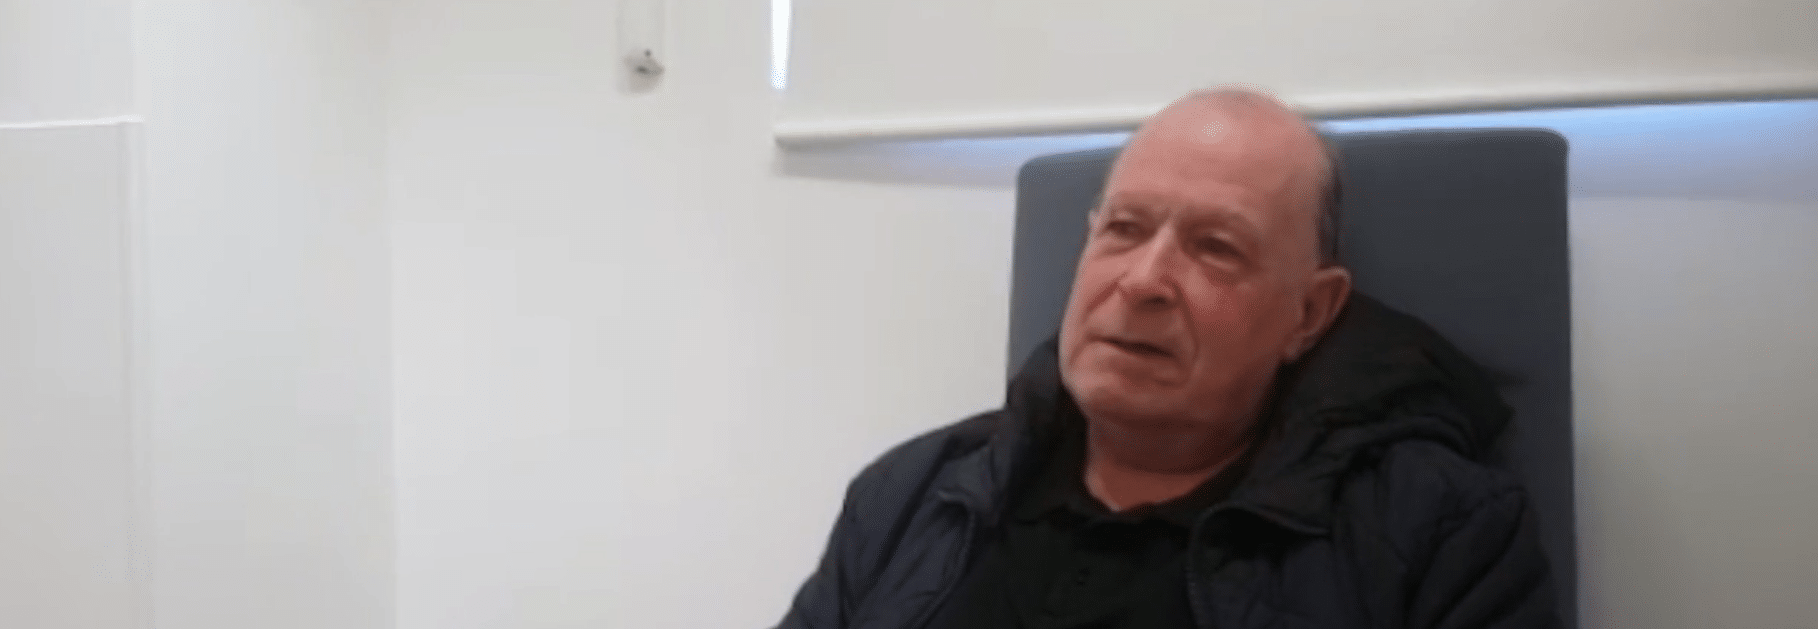 Larry - Cathedral Eye Clinic Patient Testimonial